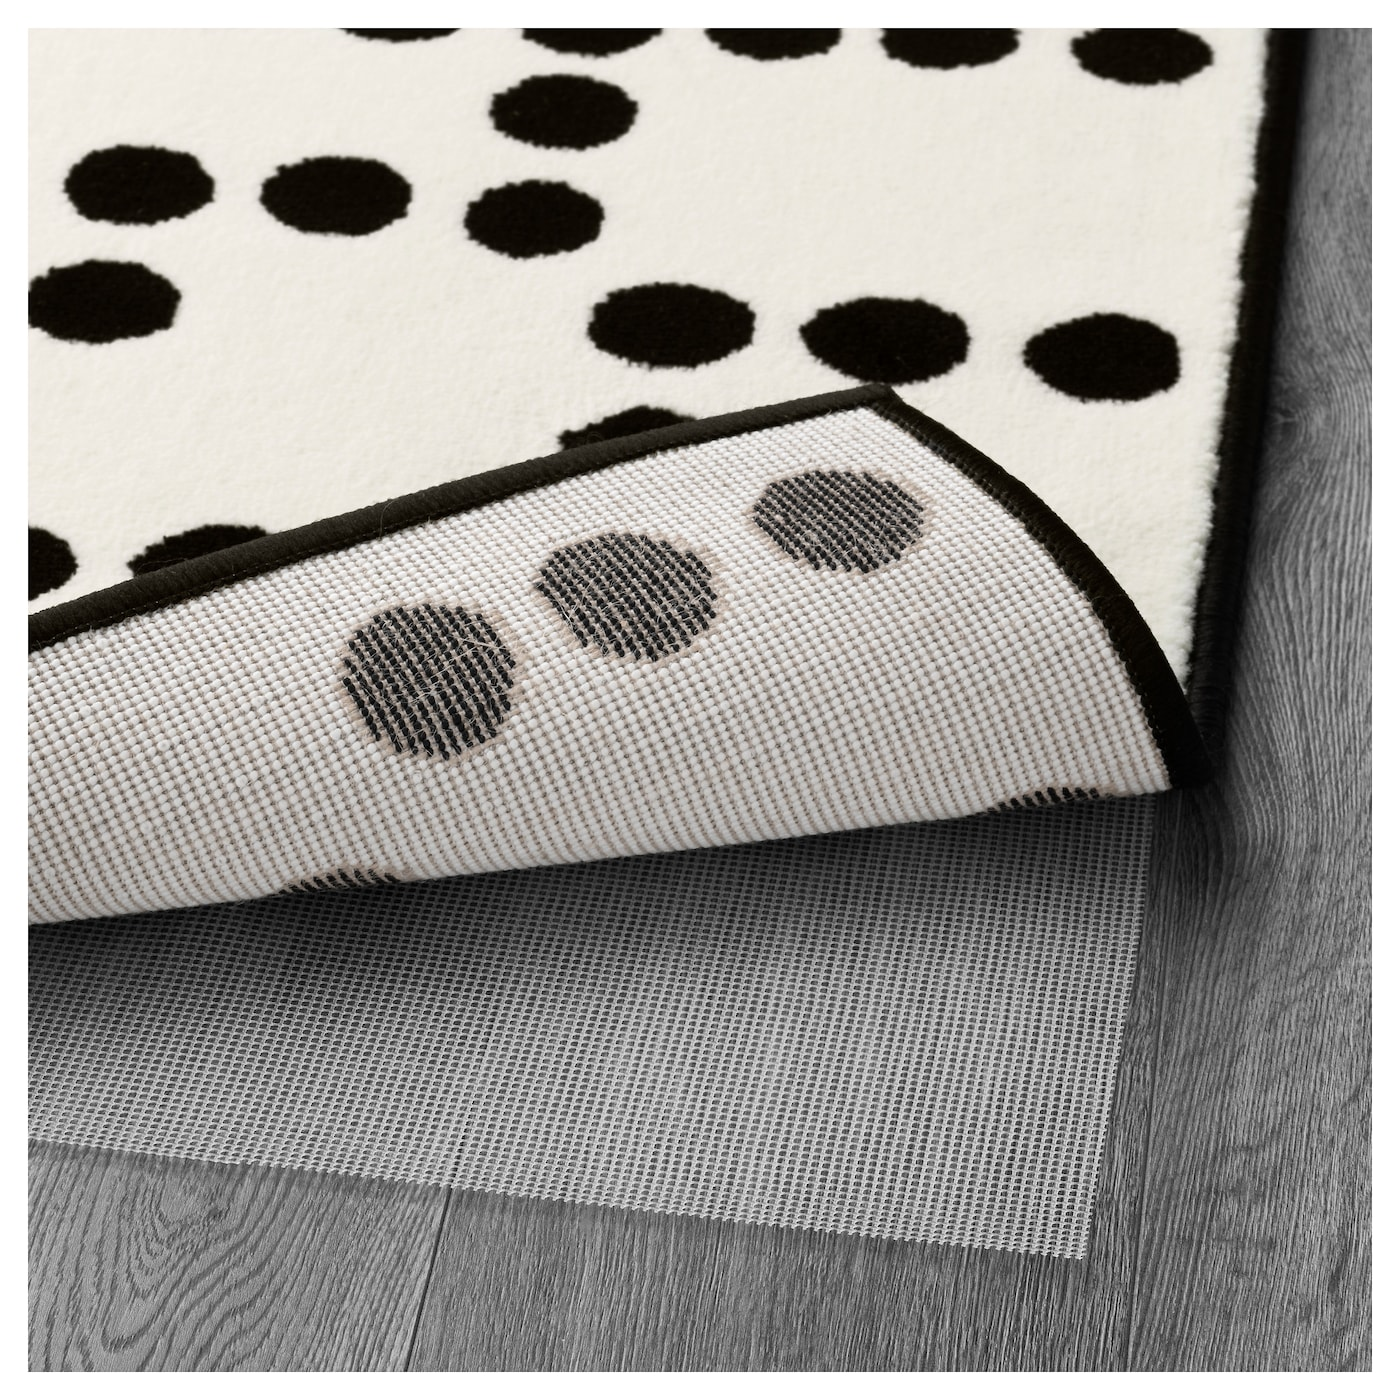 IKEA AVSIKTLIG rug, low pile The thick pile dampens sound and provides a soft surface to walk on.